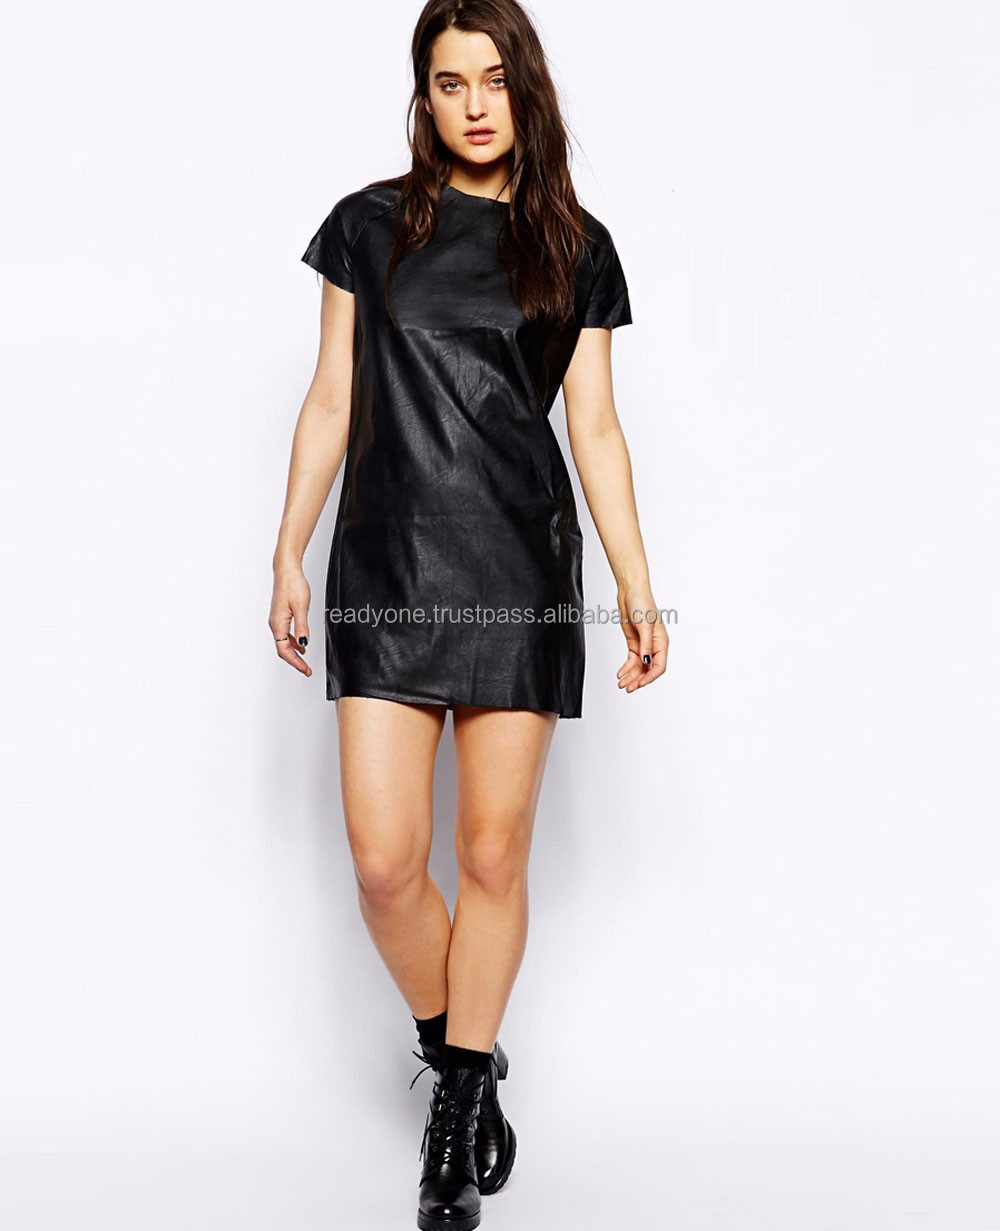 OEM accept mini black womens backless leather dresses for women